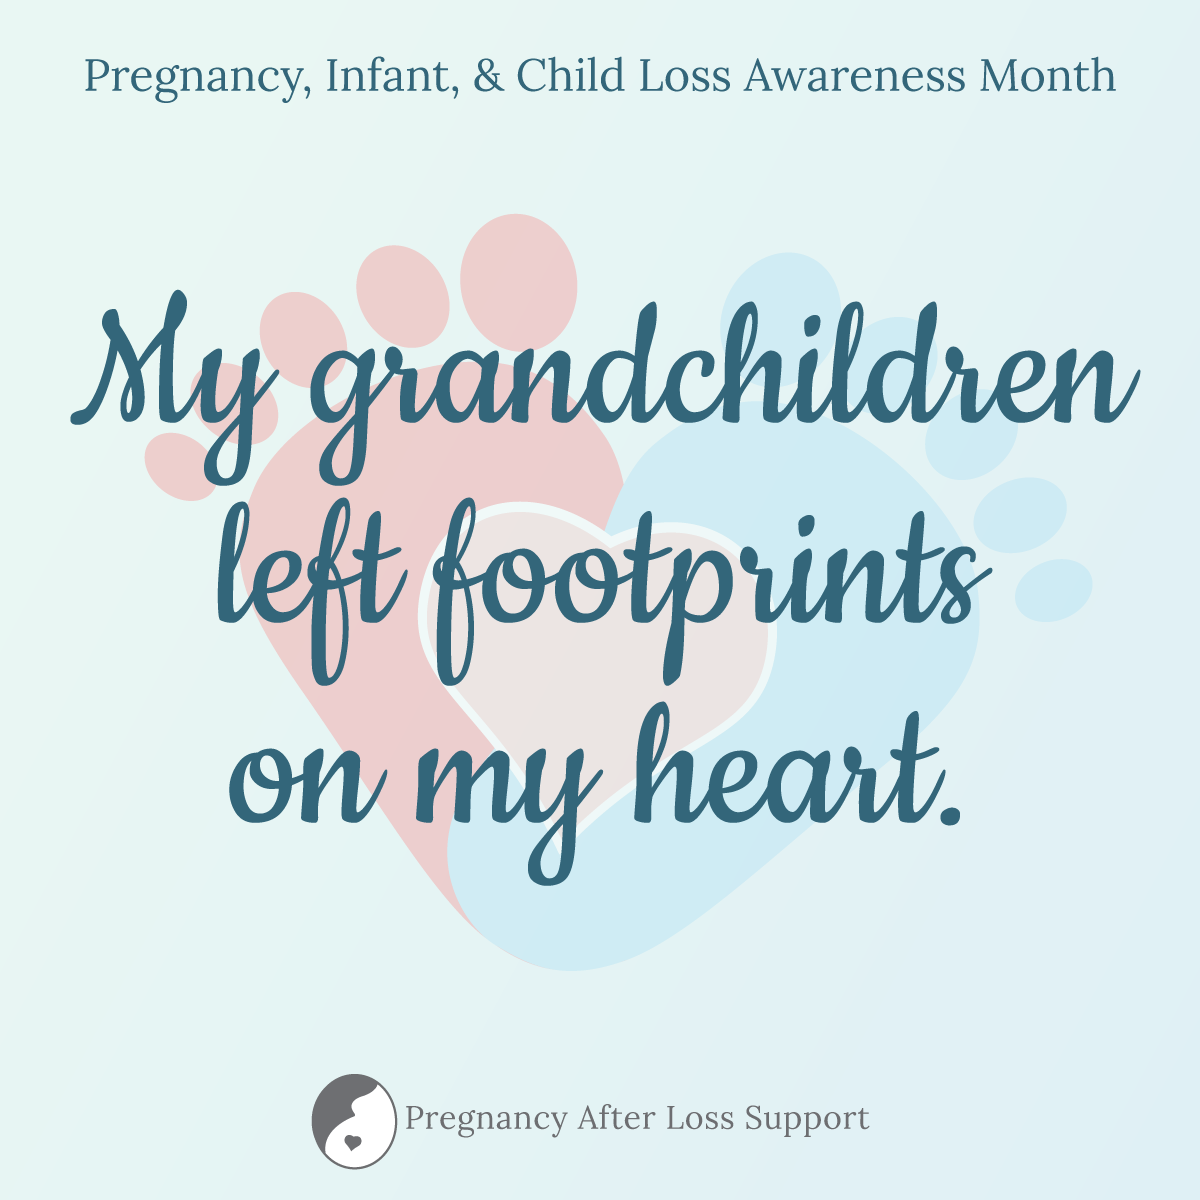 My grandchildren left footprints on my heart graphic for Pregnancy, Infant, and Child Loss Awareness Month